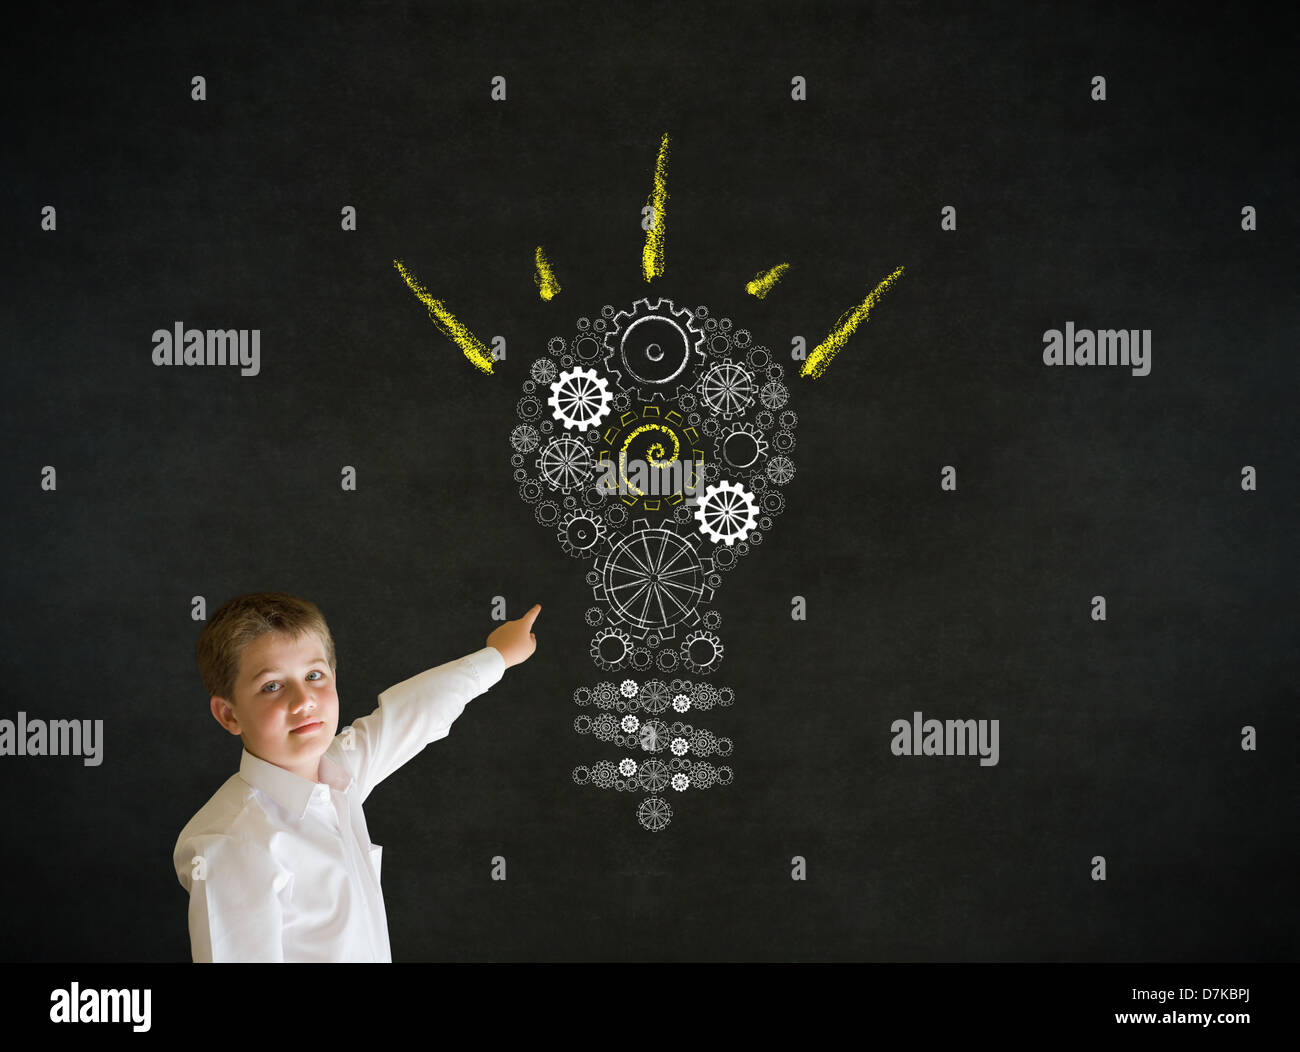 Pointing boy dressed up as business man with bright idea gear cog lightbulb on blackboard background - Stock Image